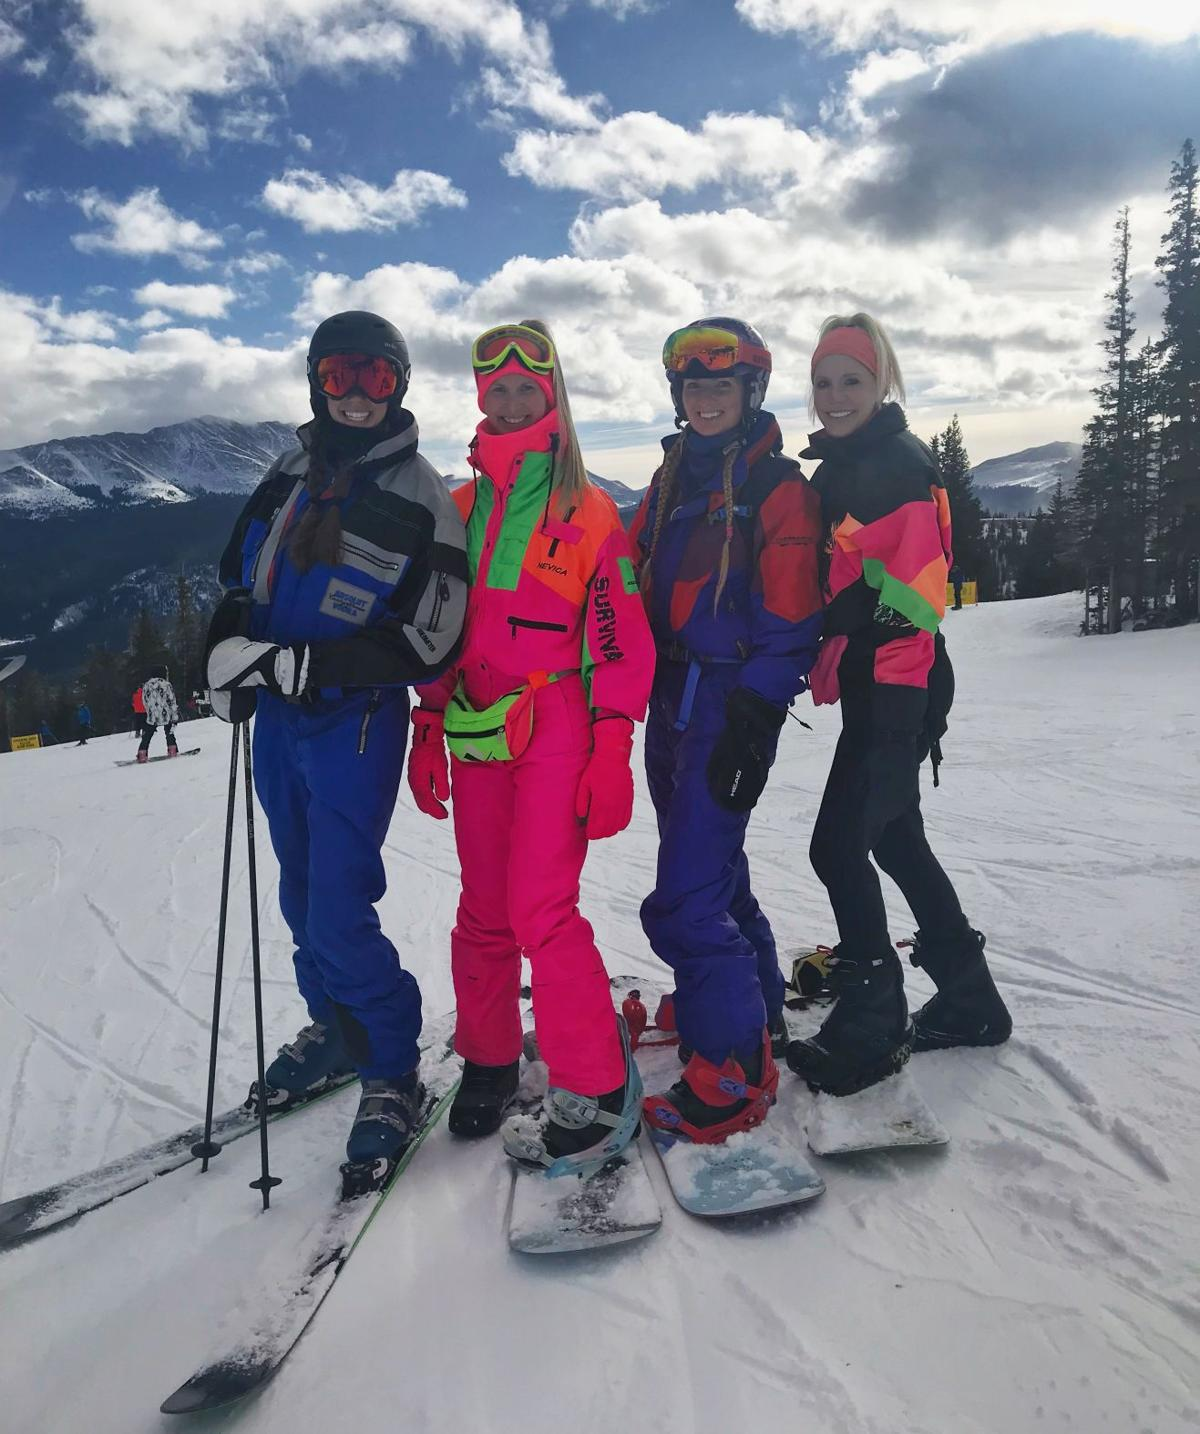 The Snow Blog: More snow in the forecast for Colorado mountains over long weekend